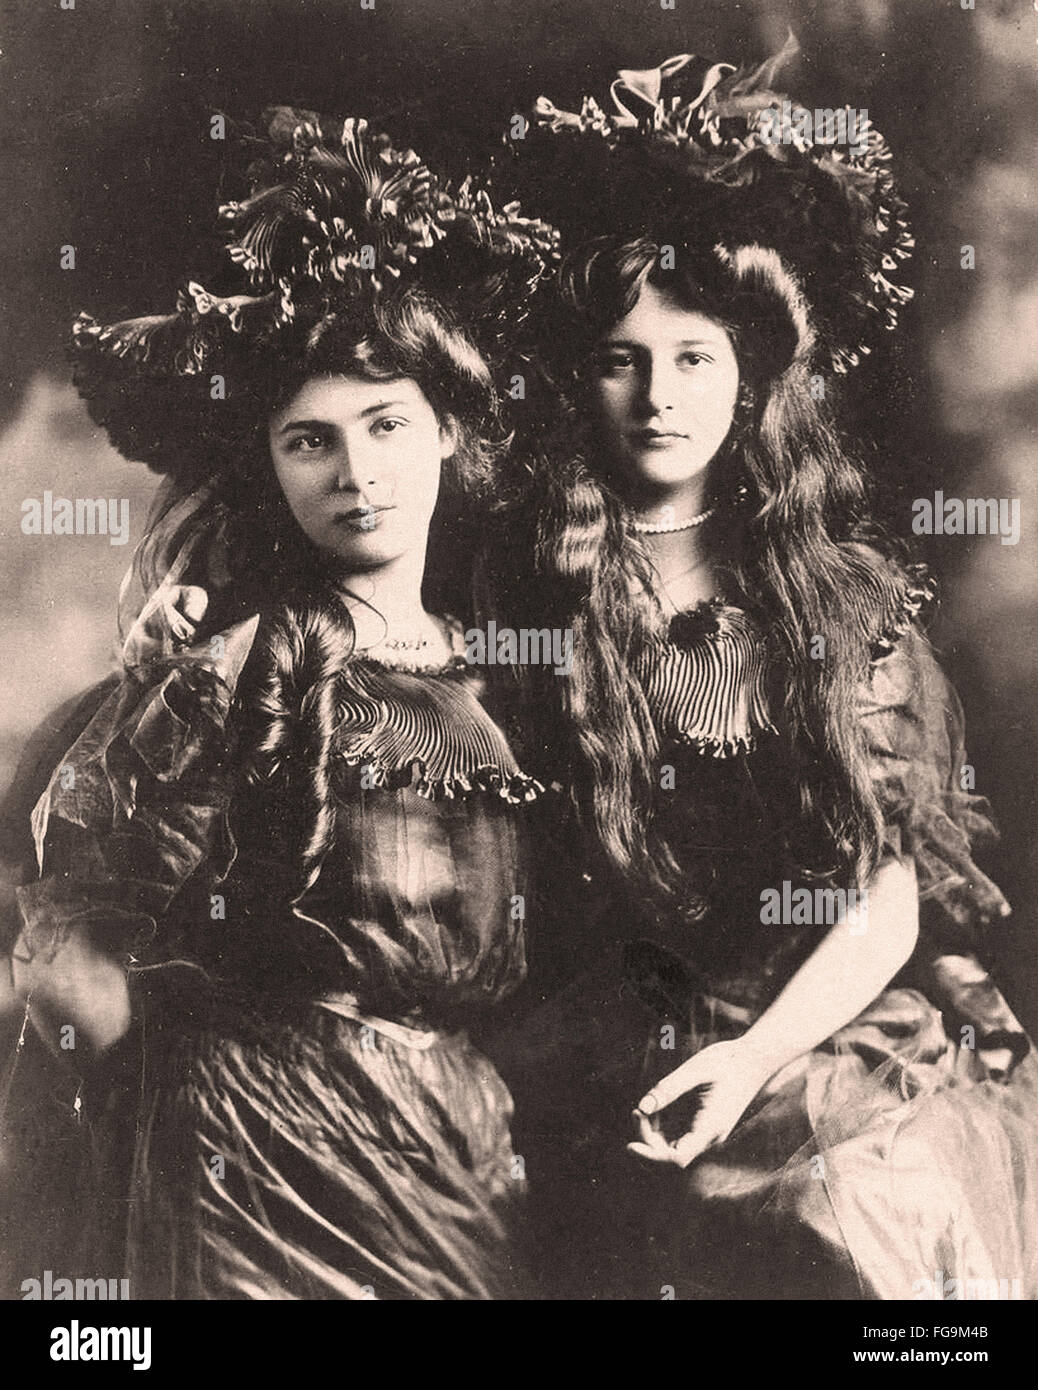 Twin girl Couples in Victorian and Edwardian Eras - Stock Image